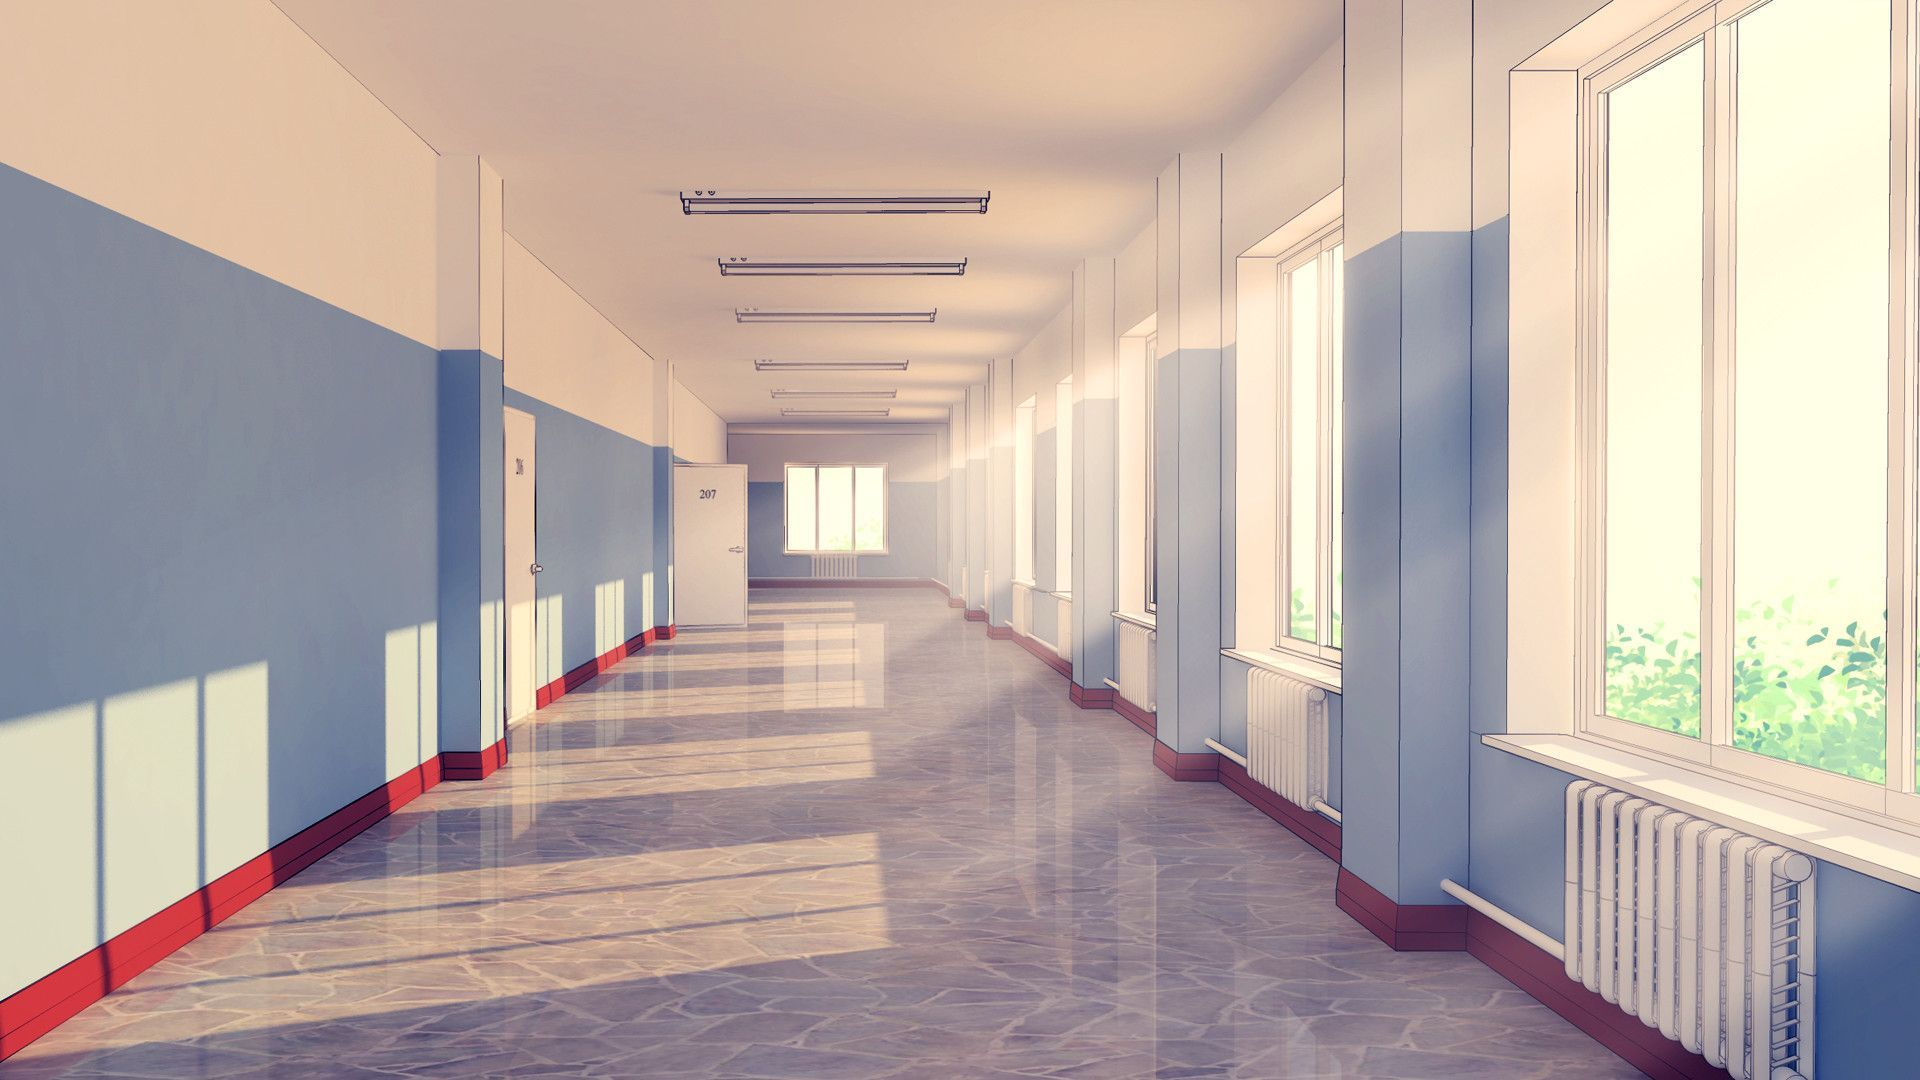 25 School Hallway Wallpapers Download At Wallpaperbro Com